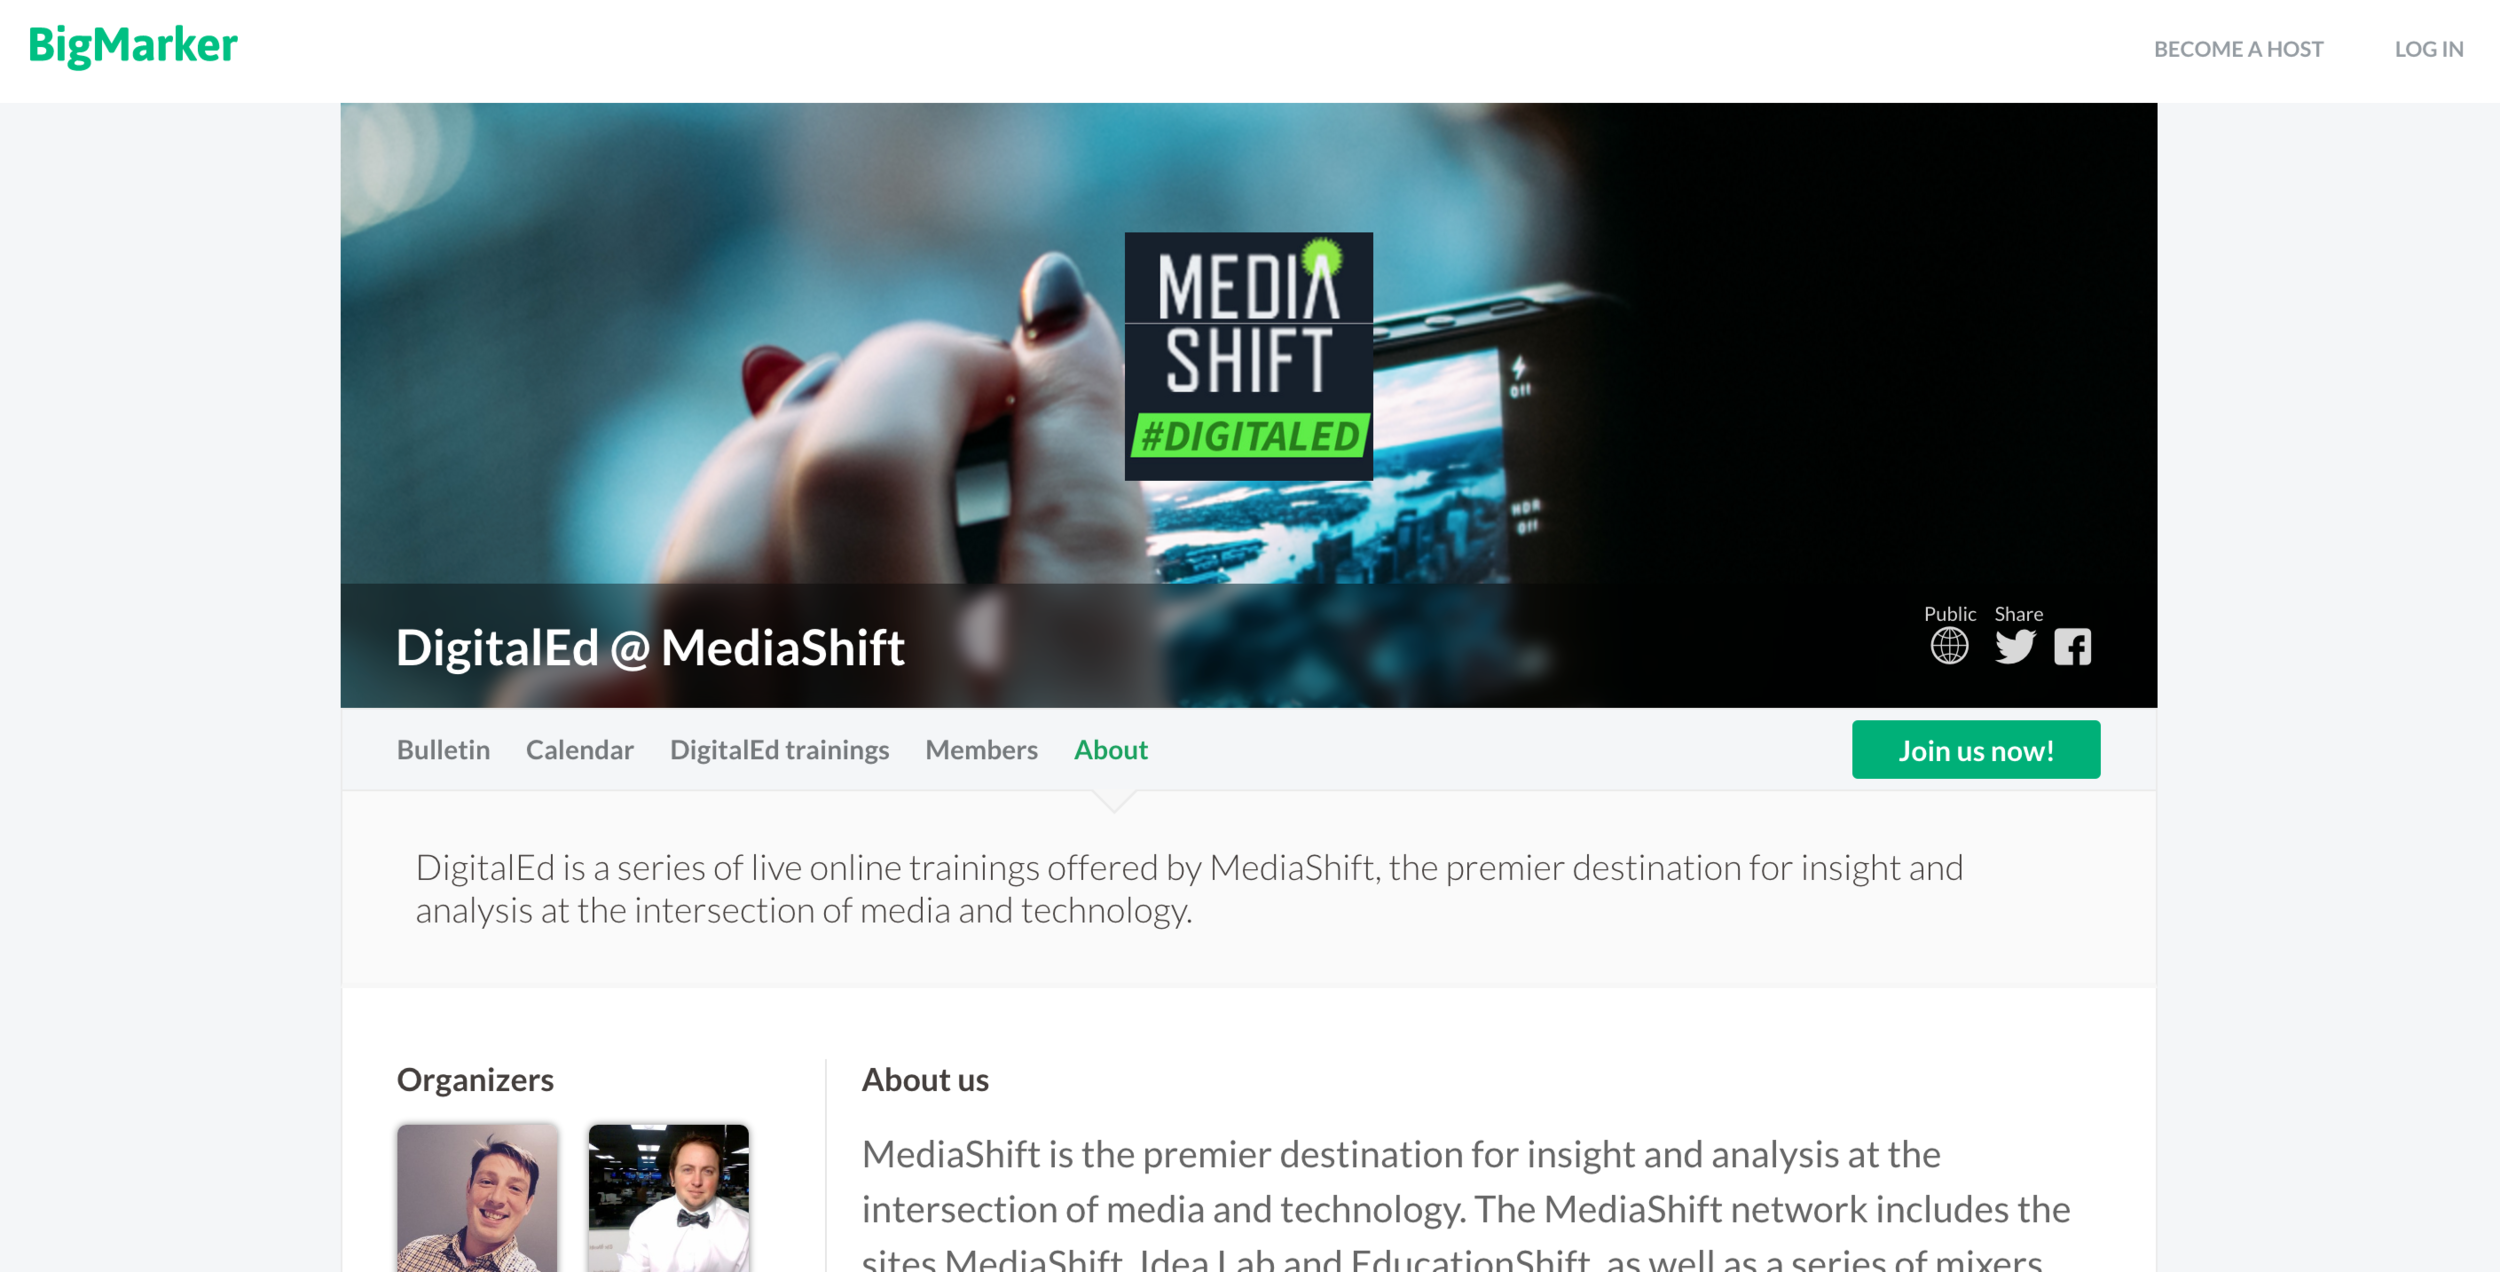 DigitalEd @ MediaShift is a PBS-backed initiative to extend access to digital skills.